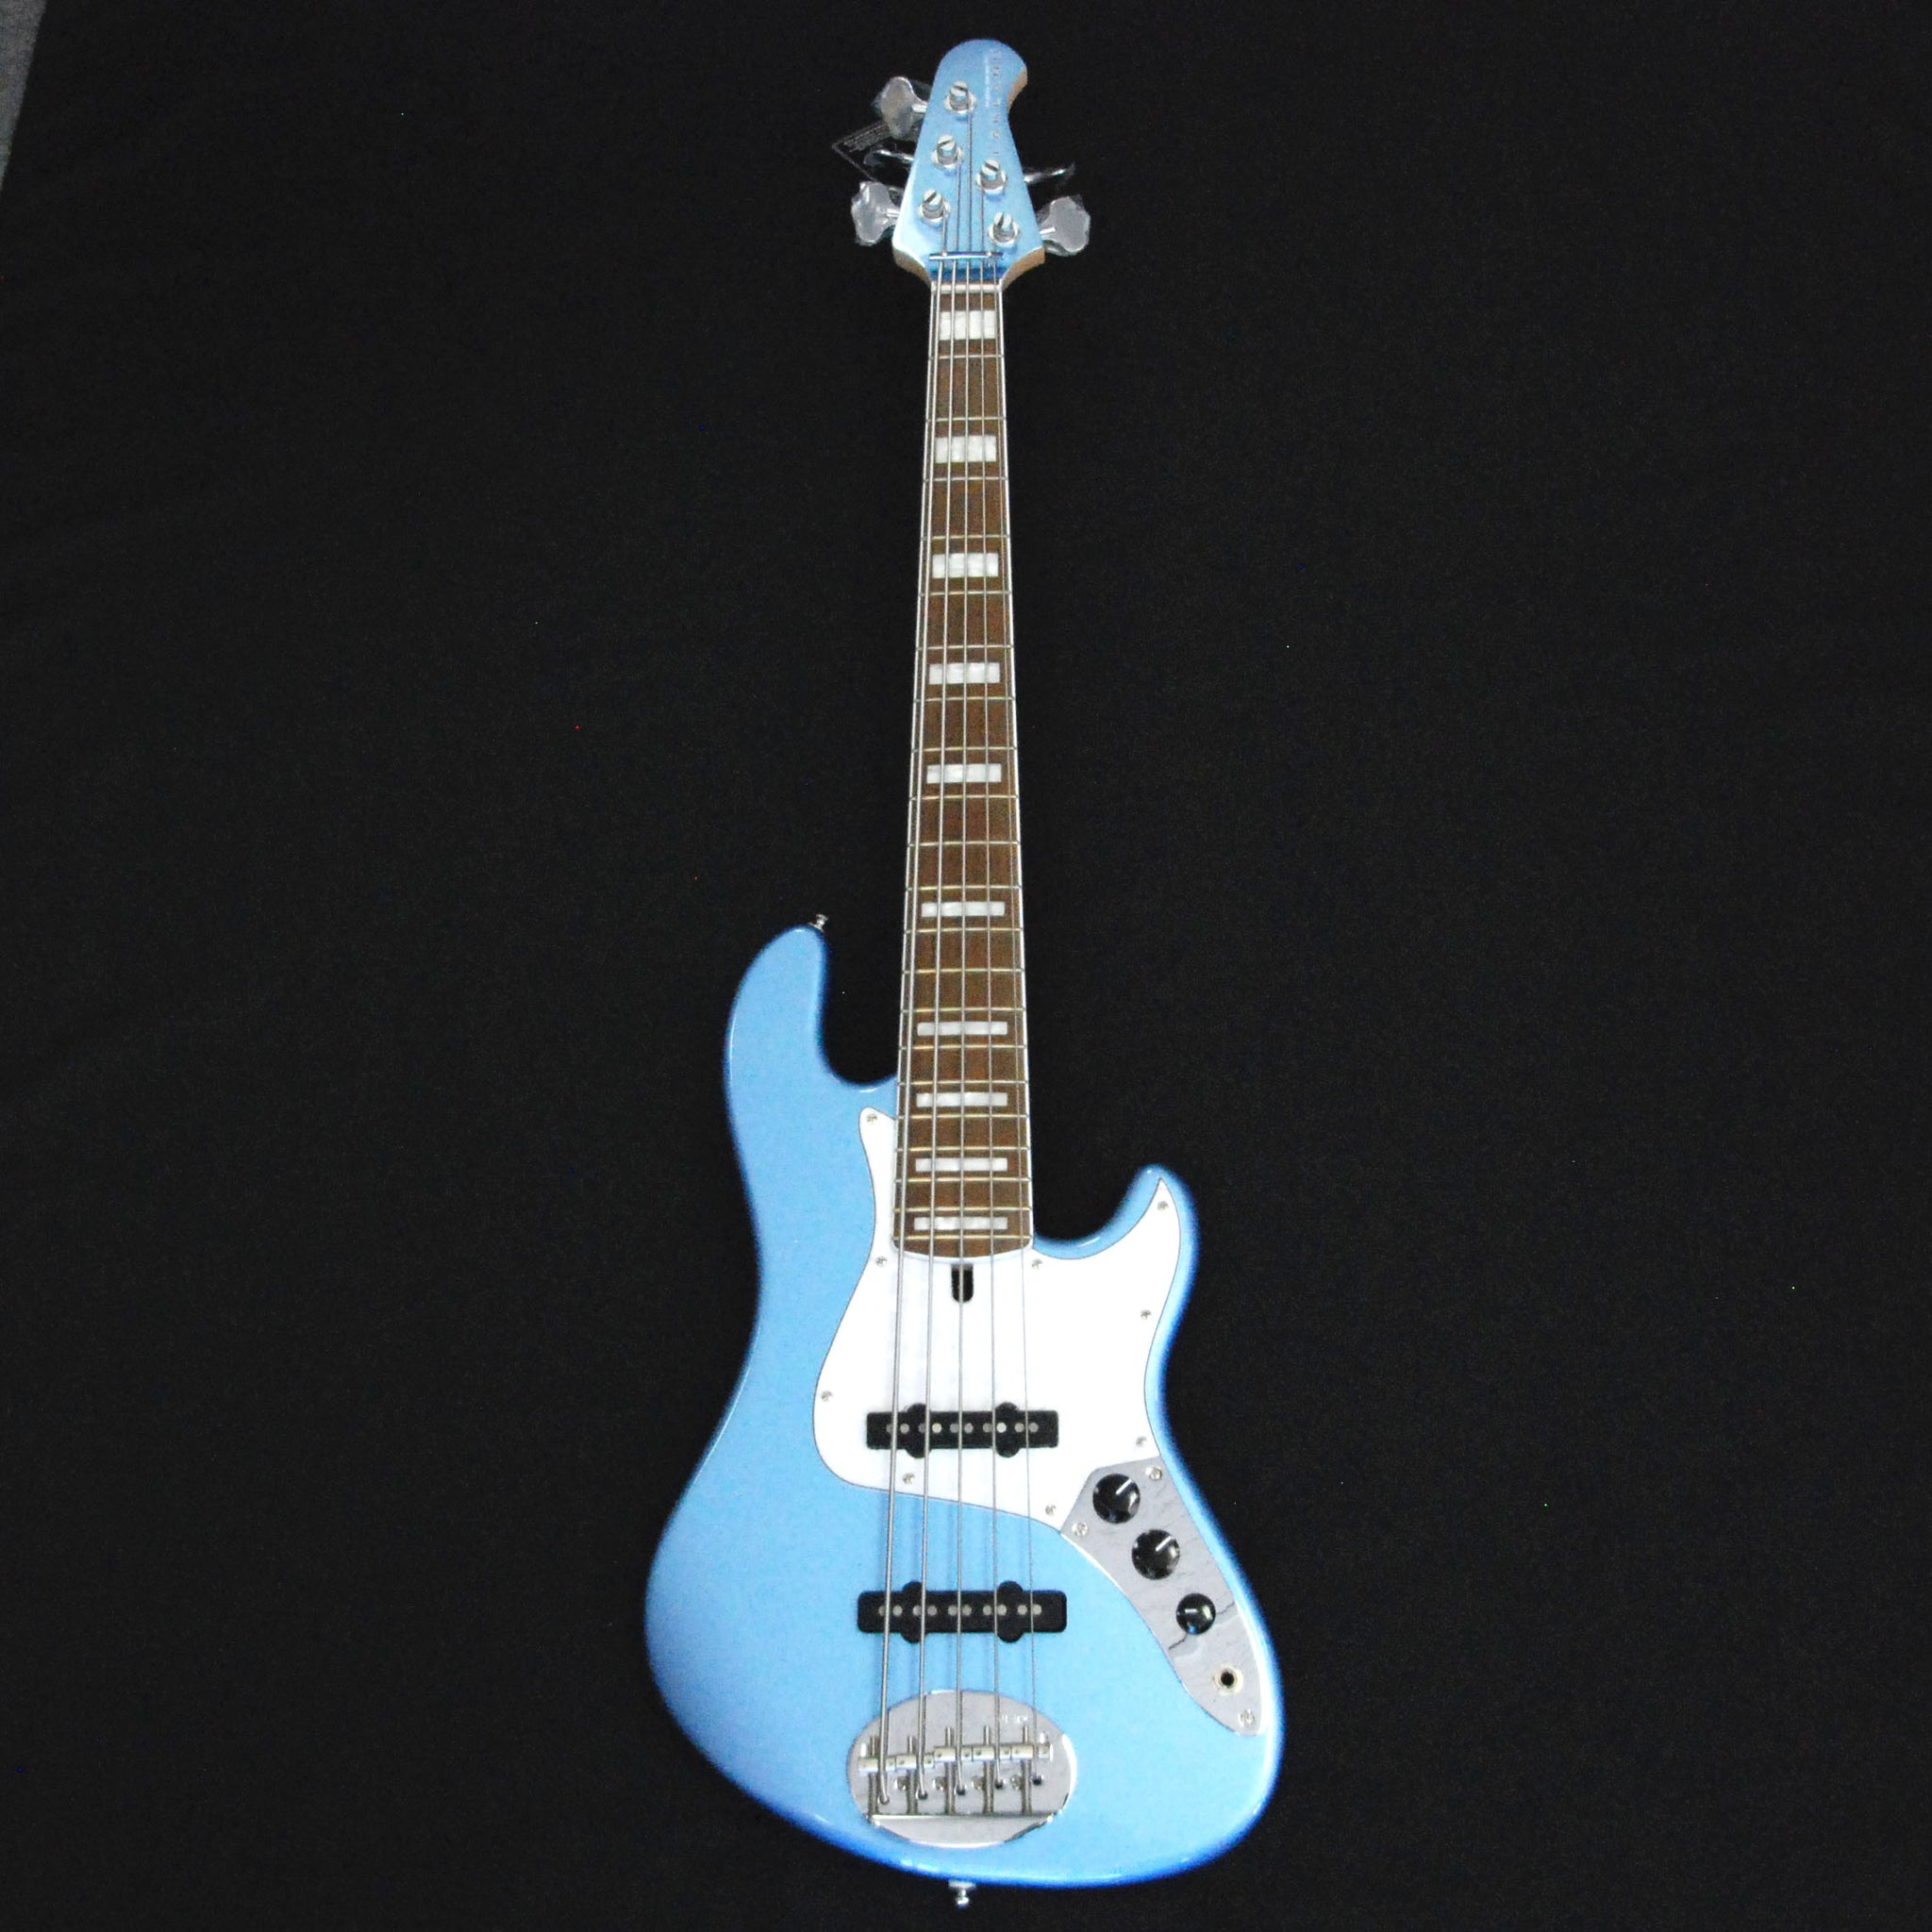 Shop online for Lakland USA Series DJ-4 Darryl Jones Signature Bass Lake Placid Blue 5 String Electric Bass Guitar [150220018] today. Now available for purchase from Midlothian Music of Orland Park, Illinois, USA